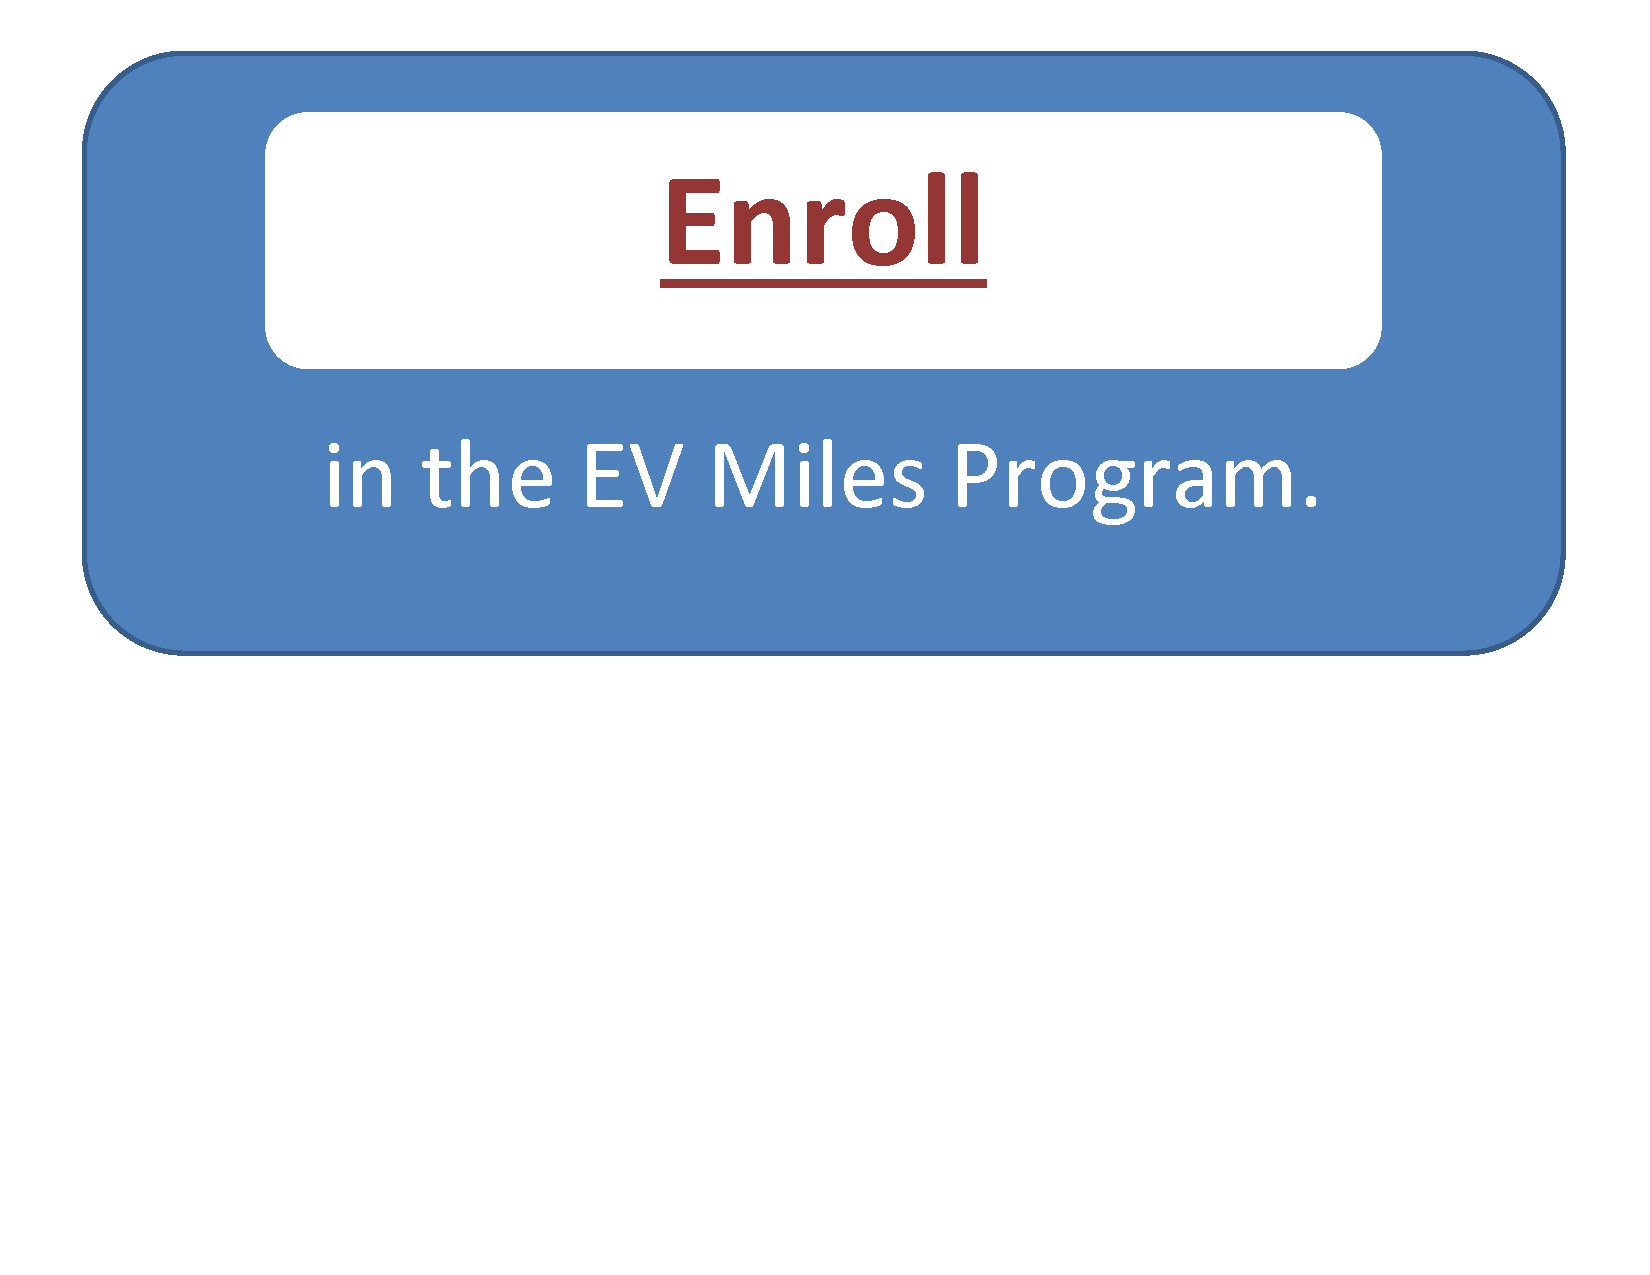 EV Miles or TOU Flowchart - Enroll in the EV Miles Program - larger, centered Opens in new window